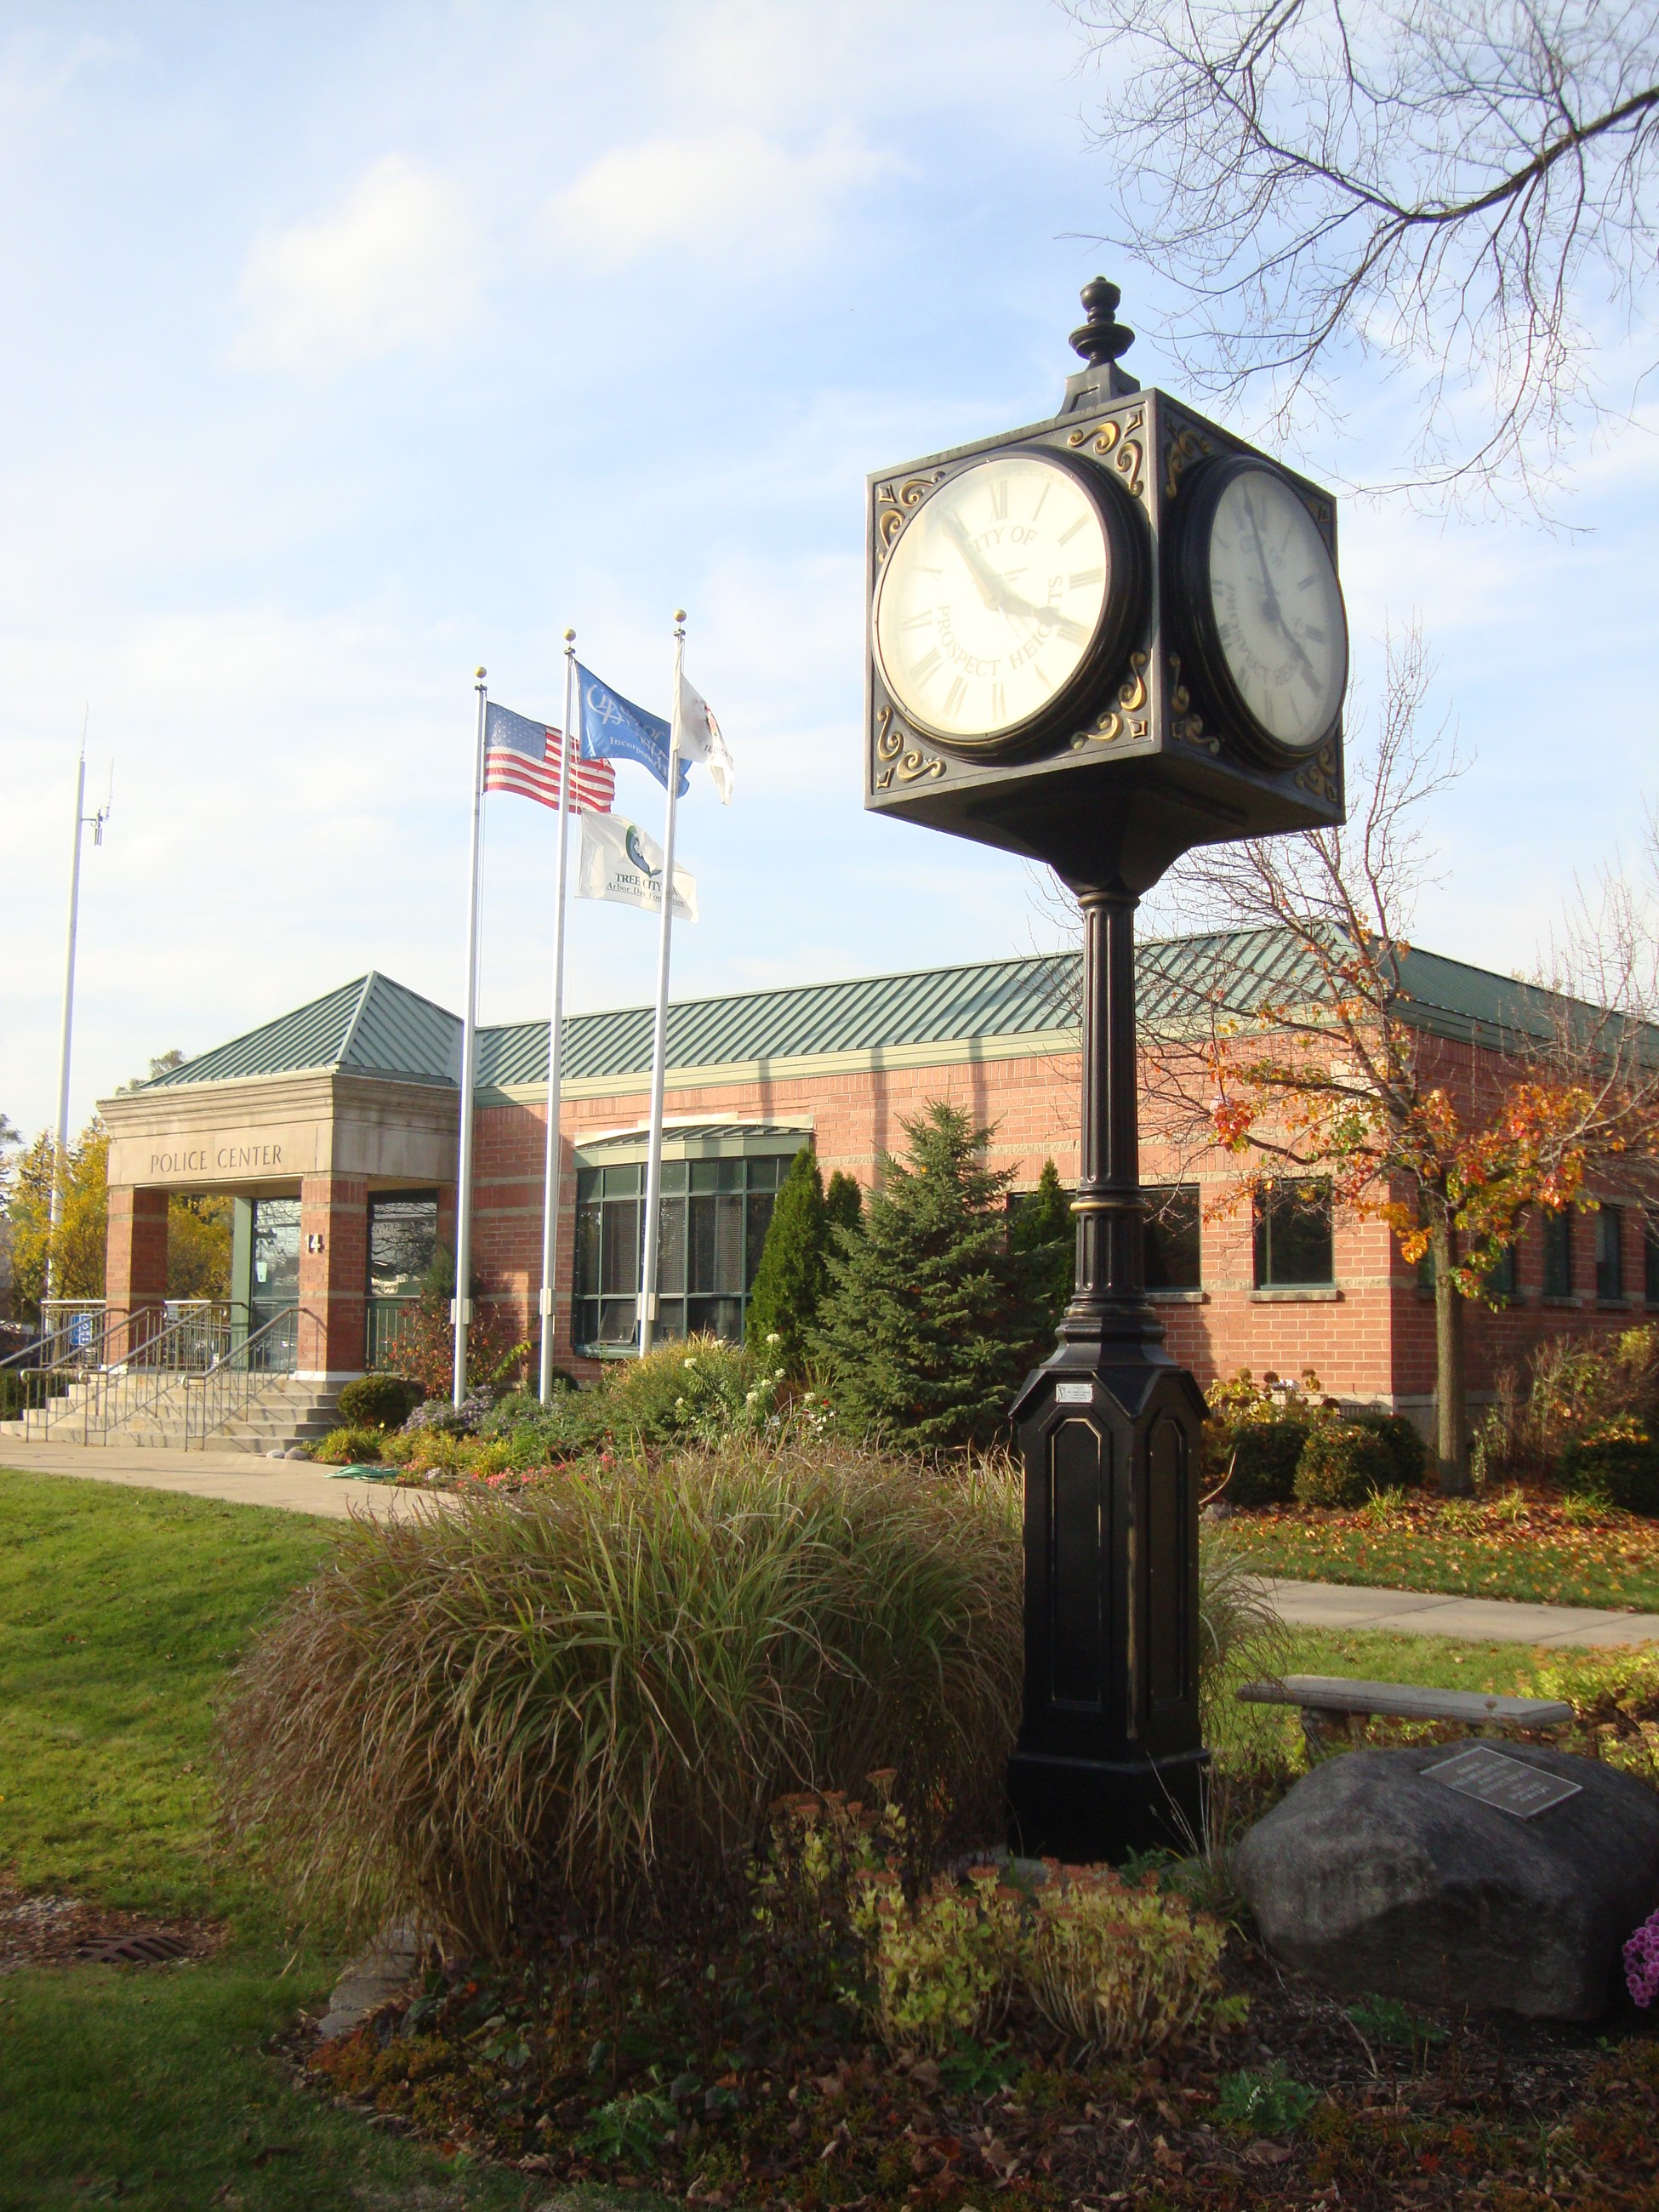 Police Department with Clock